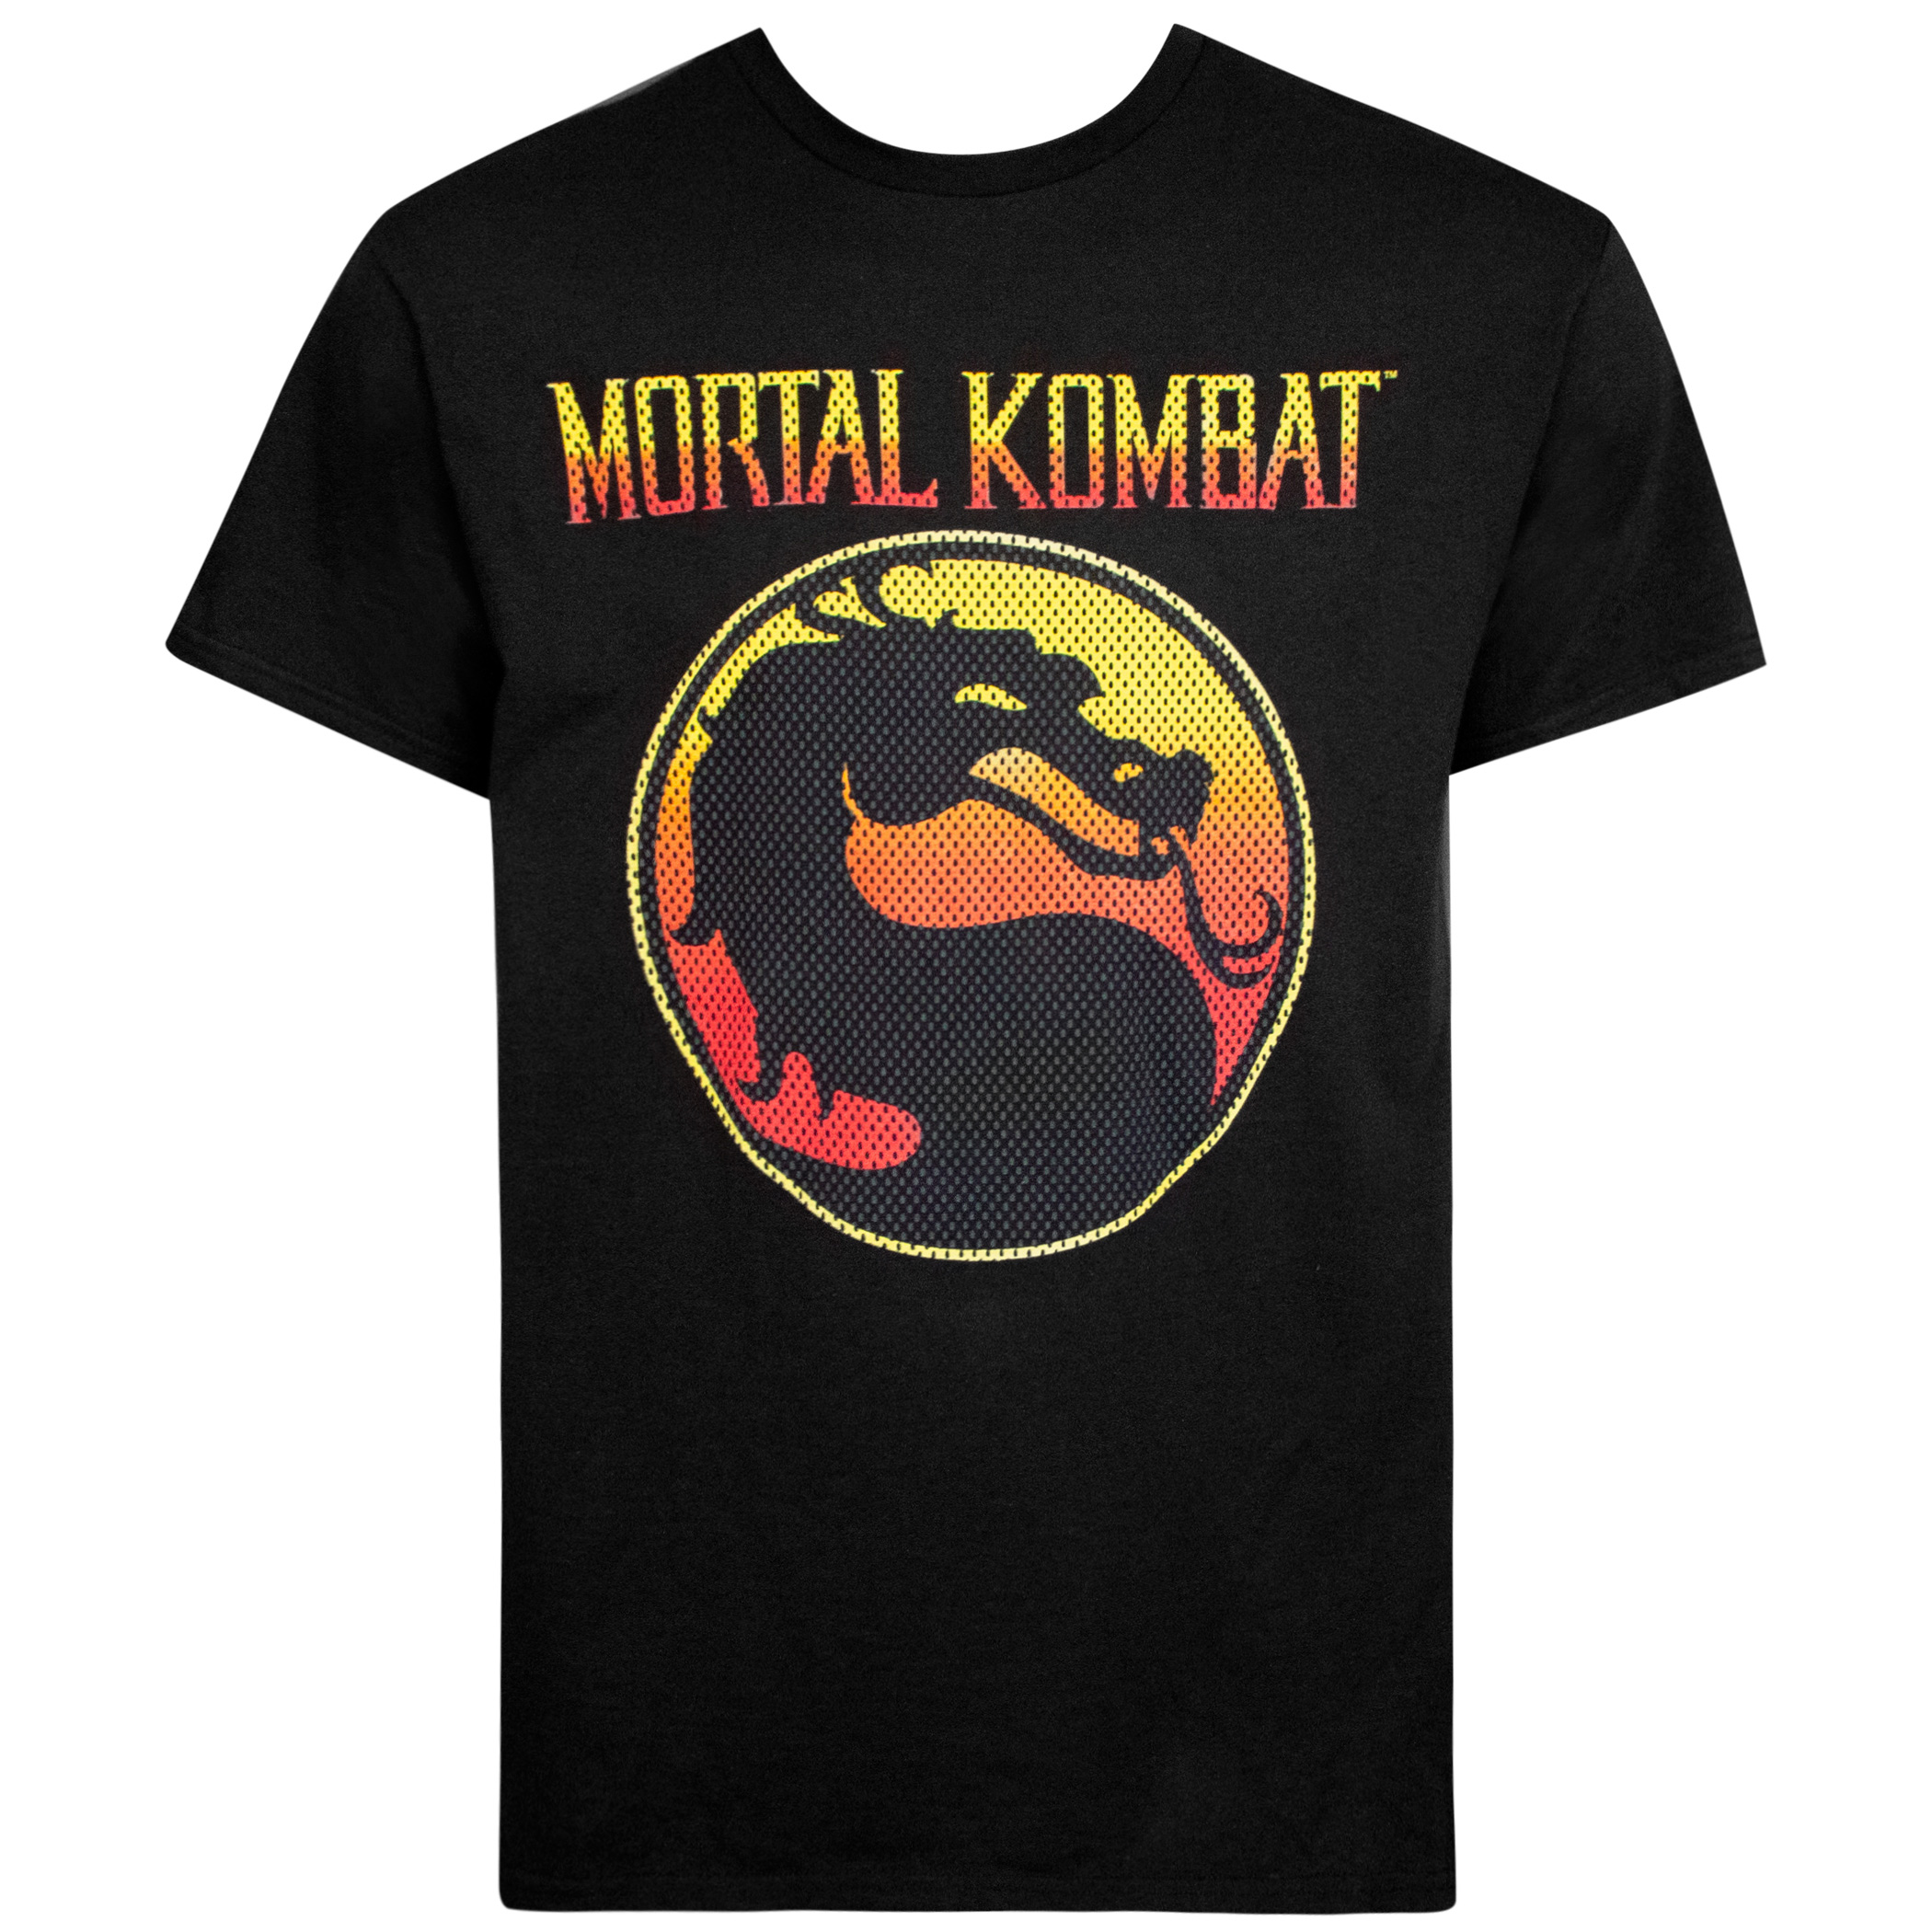 Mortal Kombat Black Classic Logo Men's T-Shirt